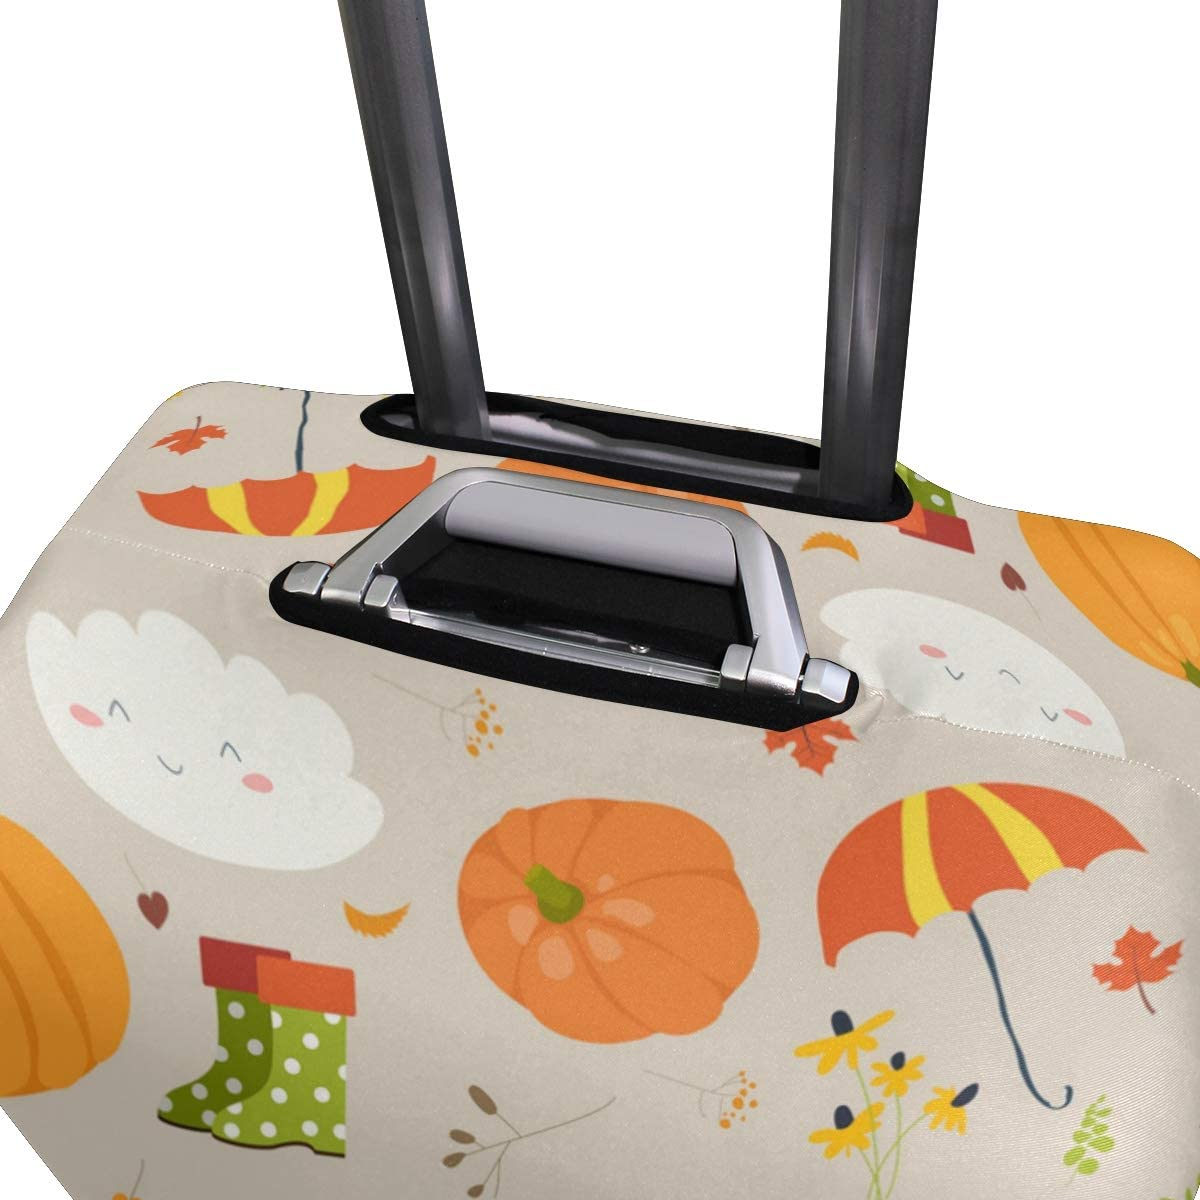 FOLPPLY Halloween Autumn Pumpkin Luggage Cover Baggage Suitcase Travel Protector Fit for 18-32 Inch